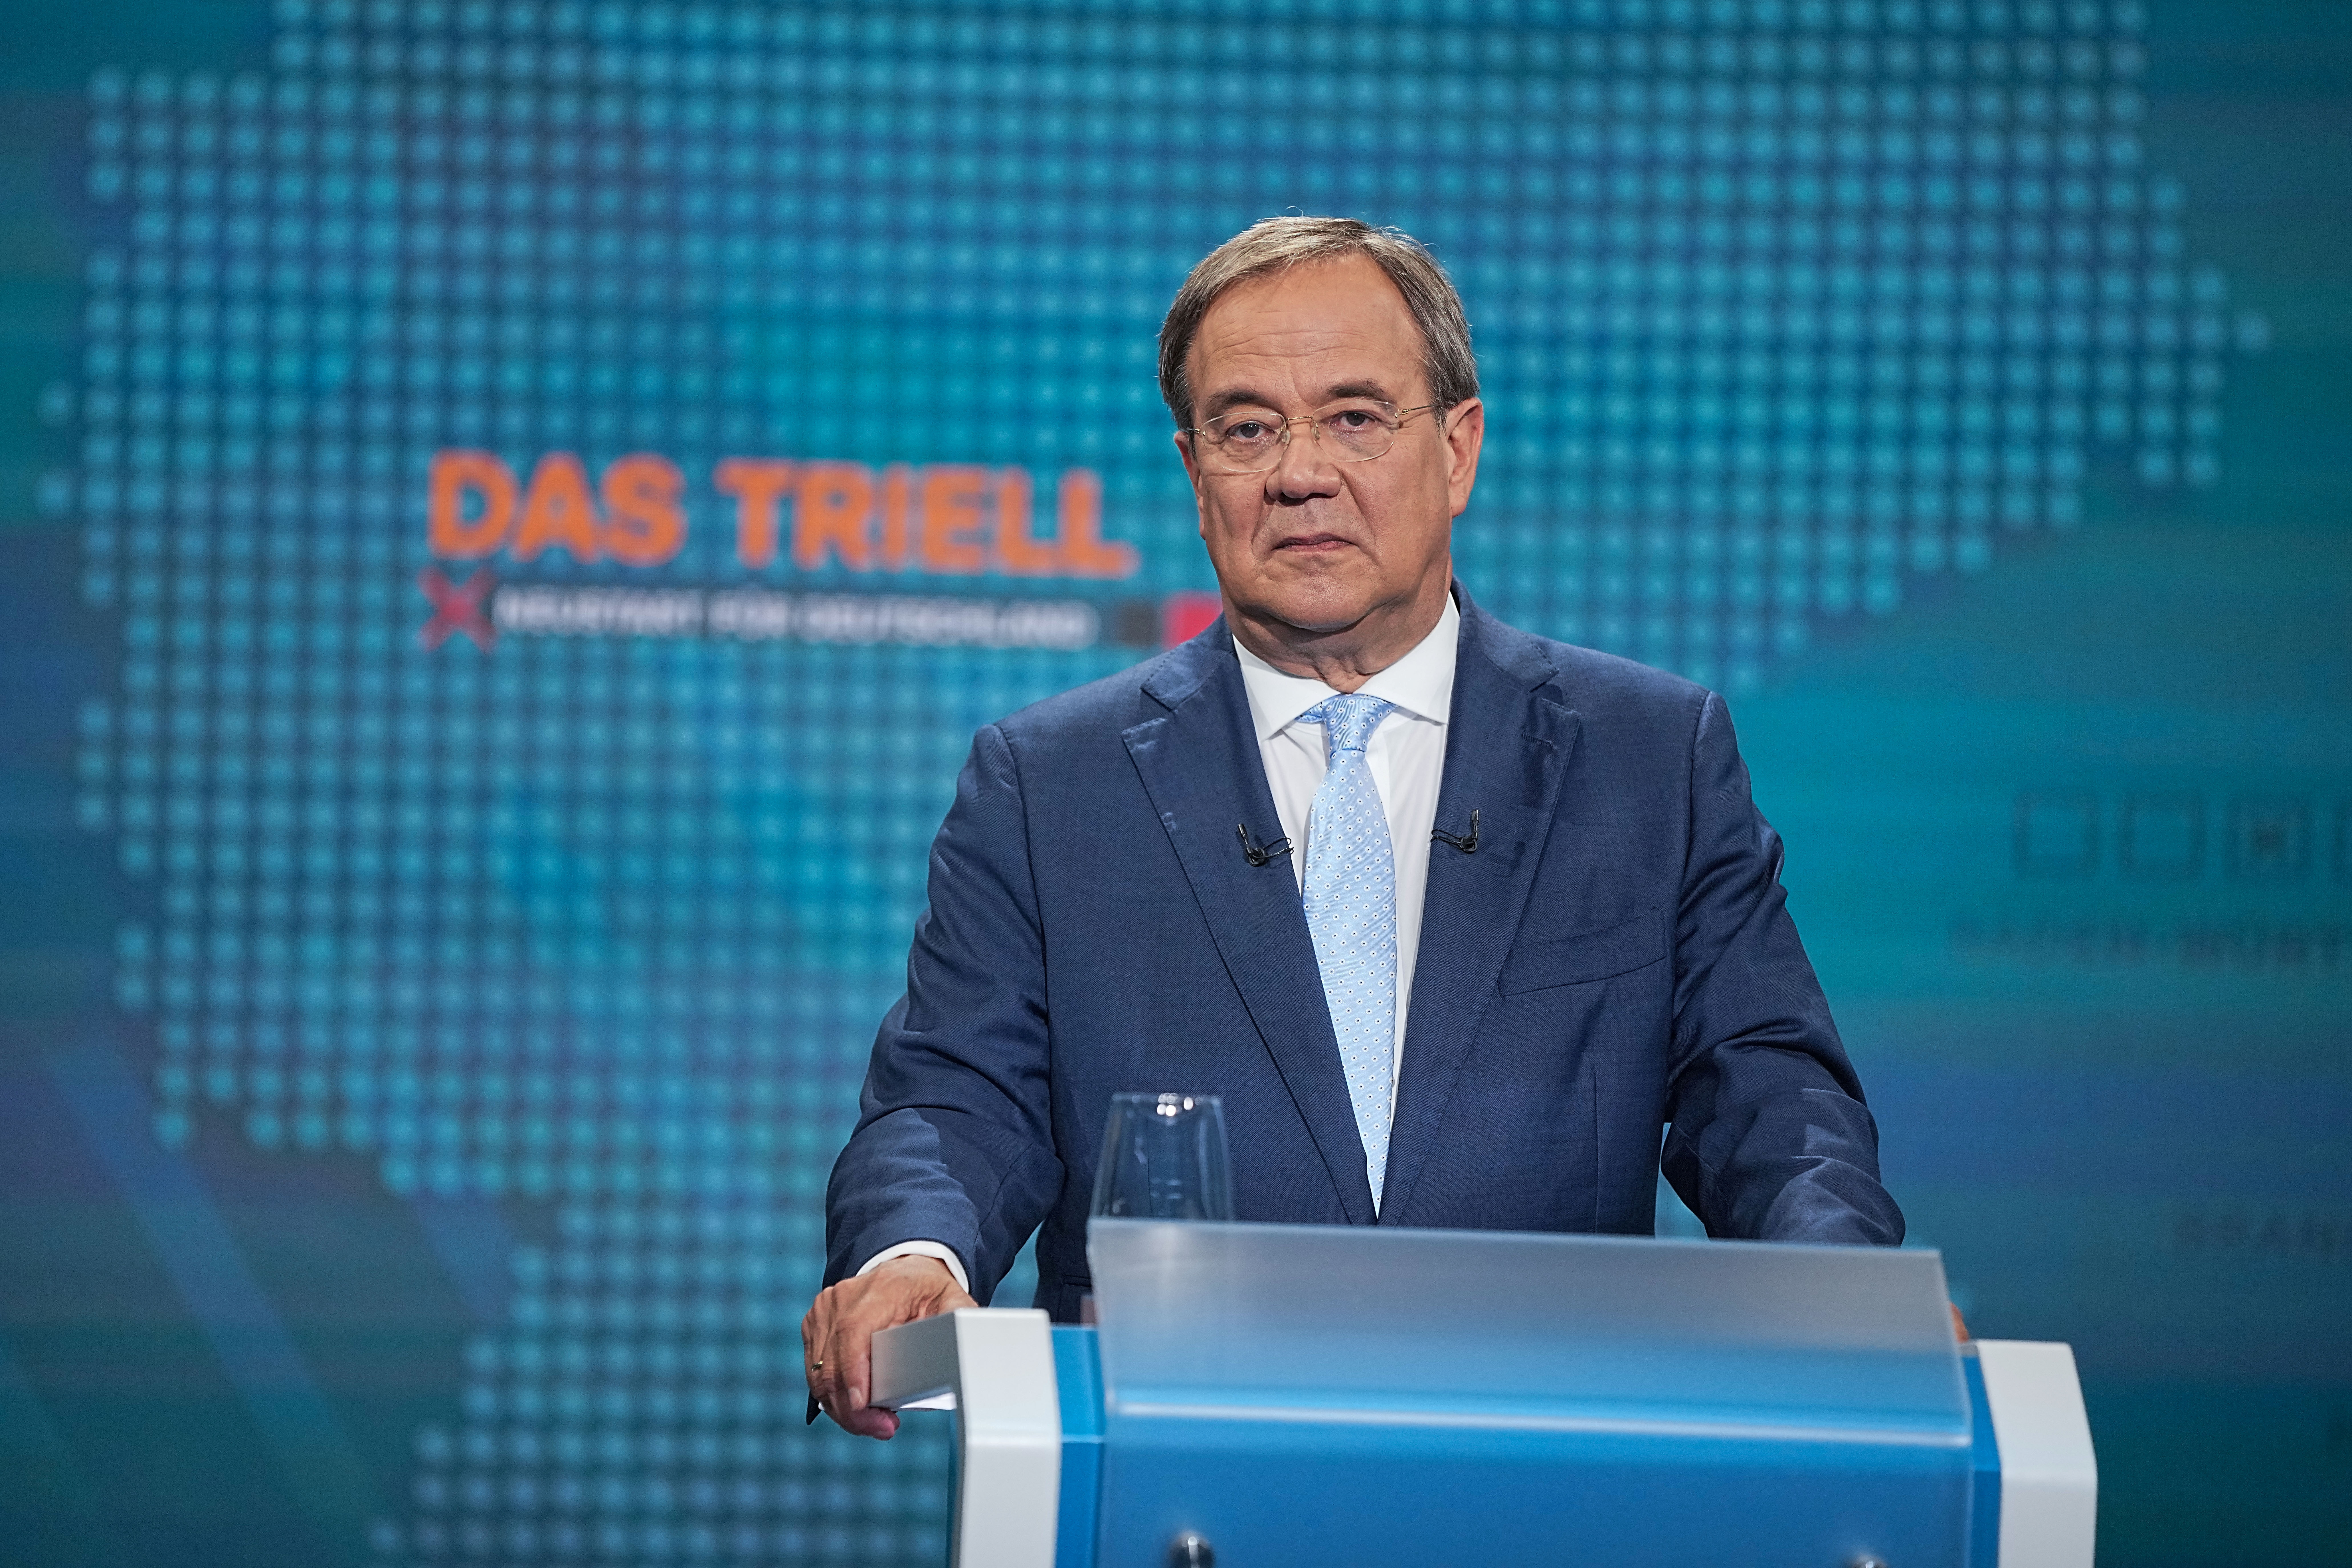 Prime Minister of North Rhine-Westphalia (NRW), leader of the Christian Democratic Union (CDU) and cadidate for chancellor Armin Laschet attends a televised debate of the candidates to succeed Angela Merkel as German chancellor in Berlin, Germany, August 29, 2021. Michael Kappeler/Pool via REUTERS